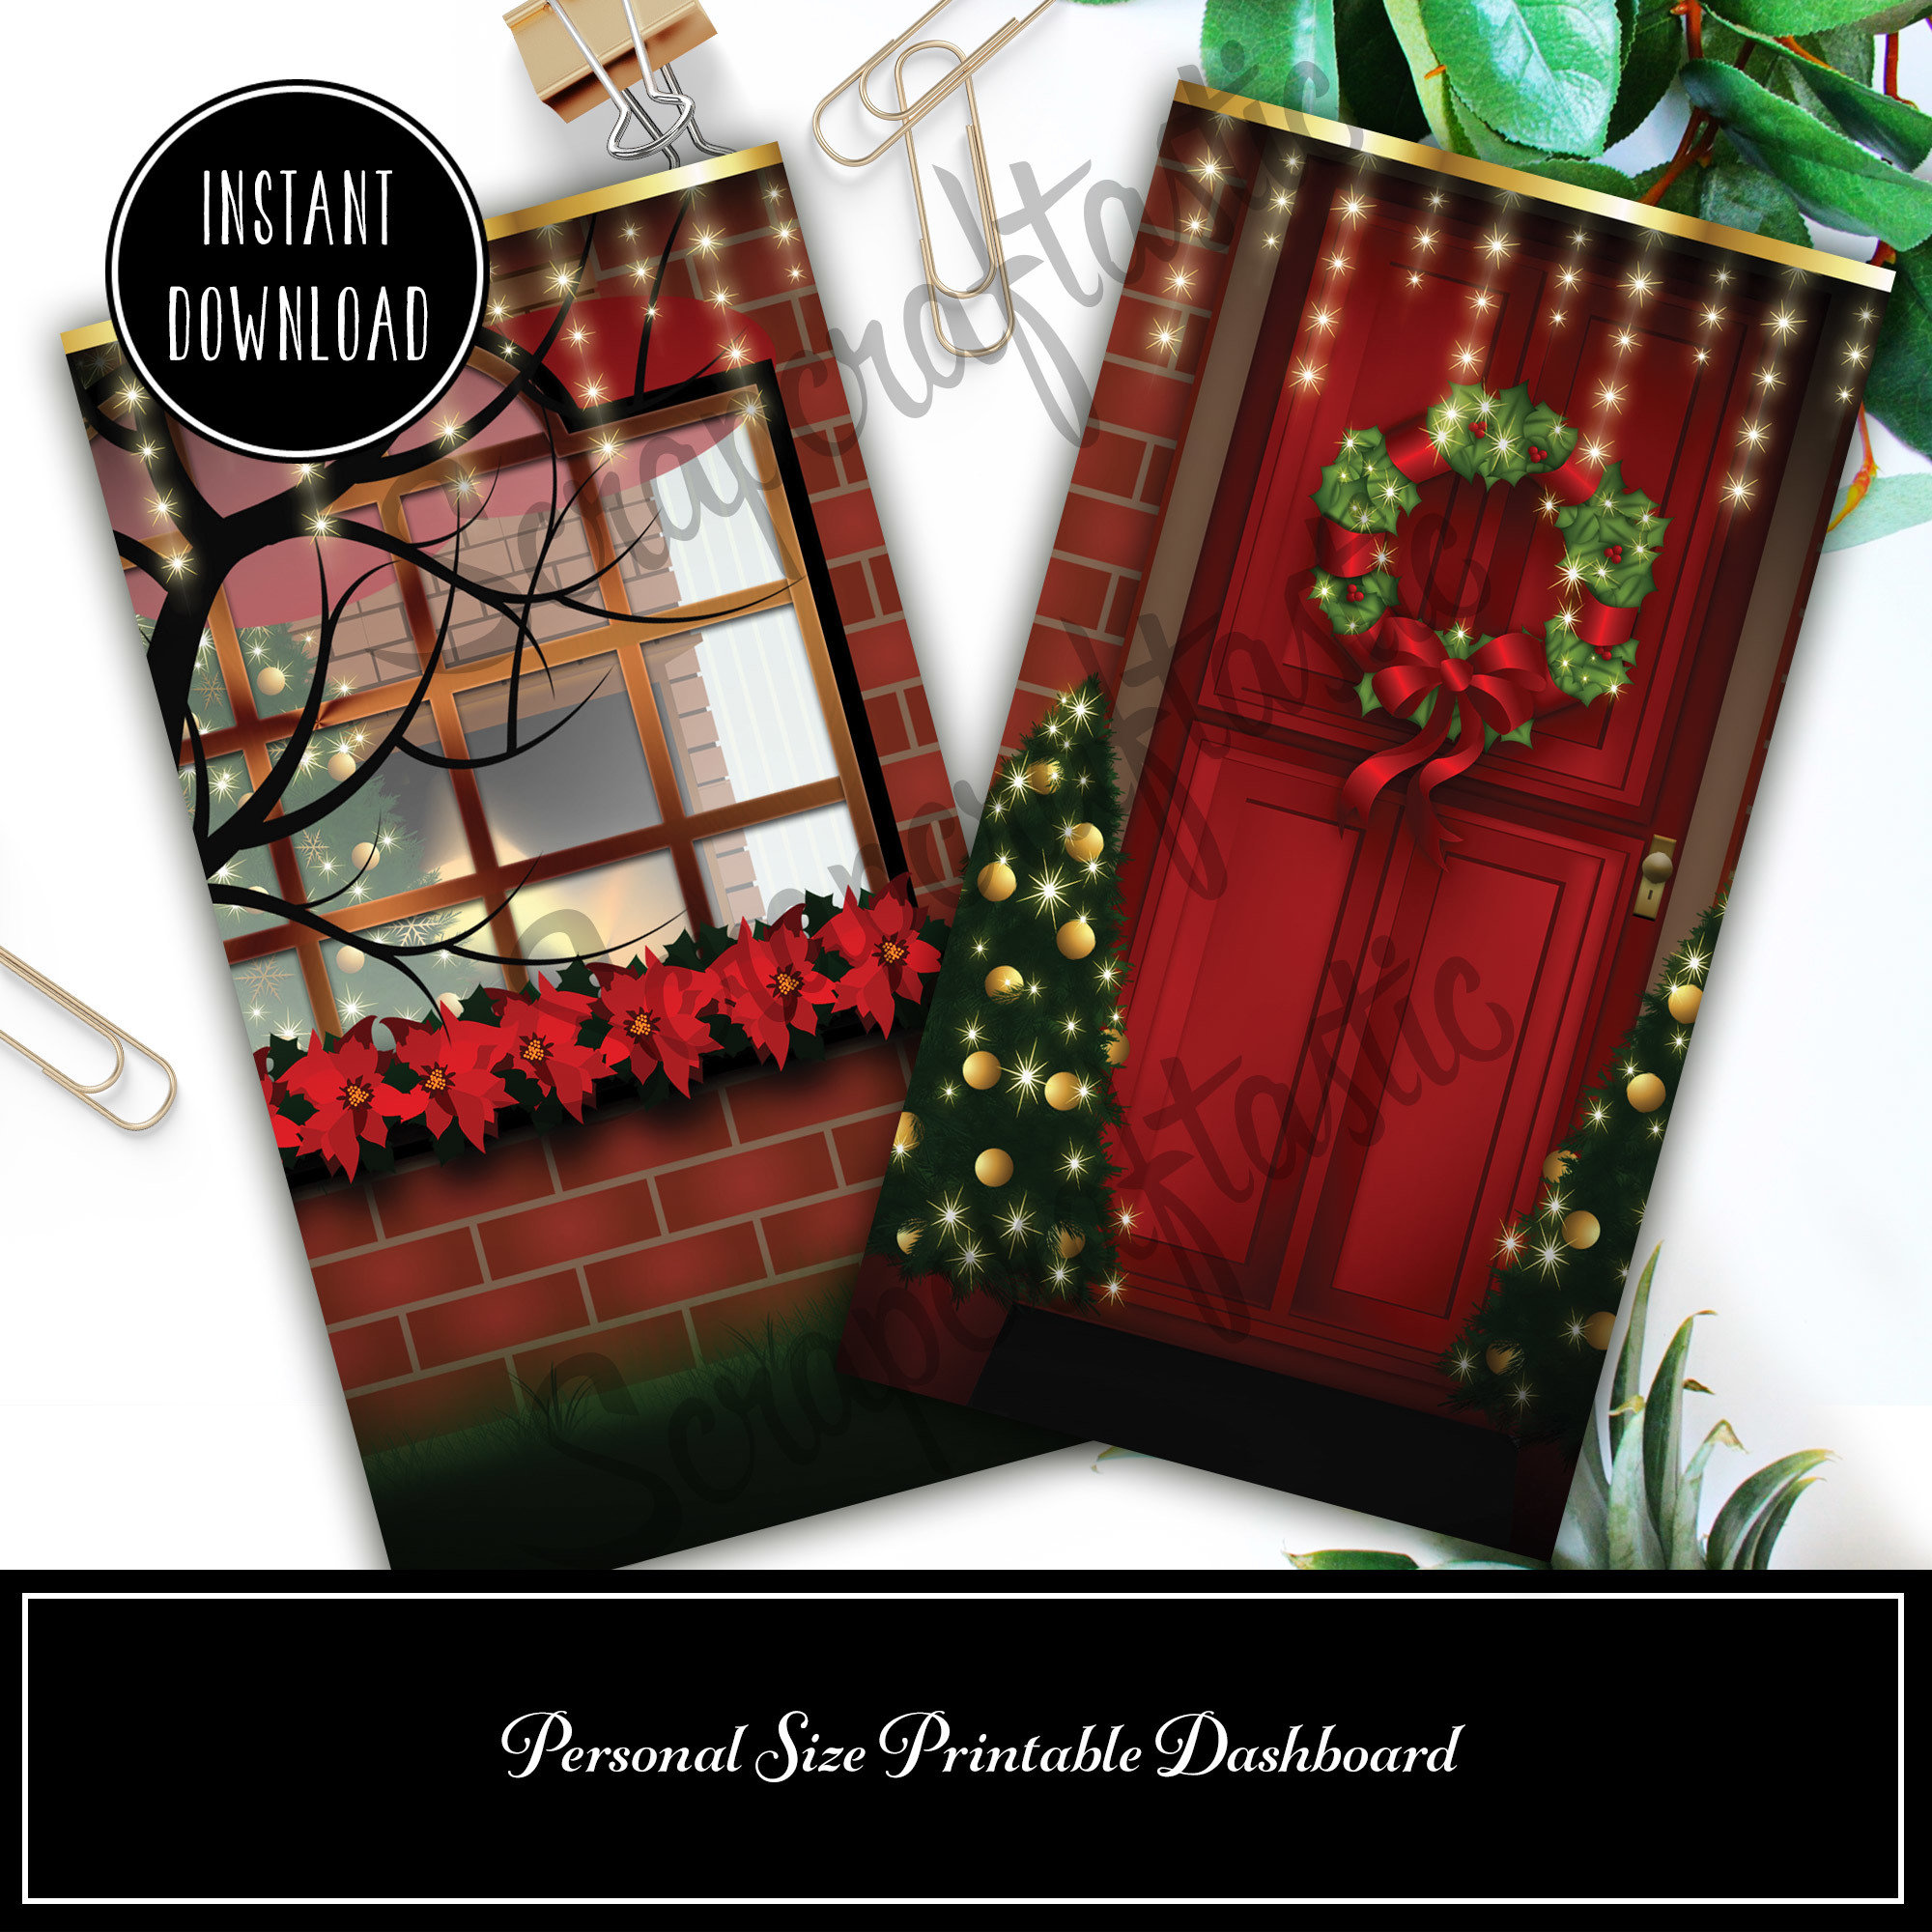 Christmas Digital Illustration Personal Size Printable Dashboard or Traveler's Notebook Cover 05007